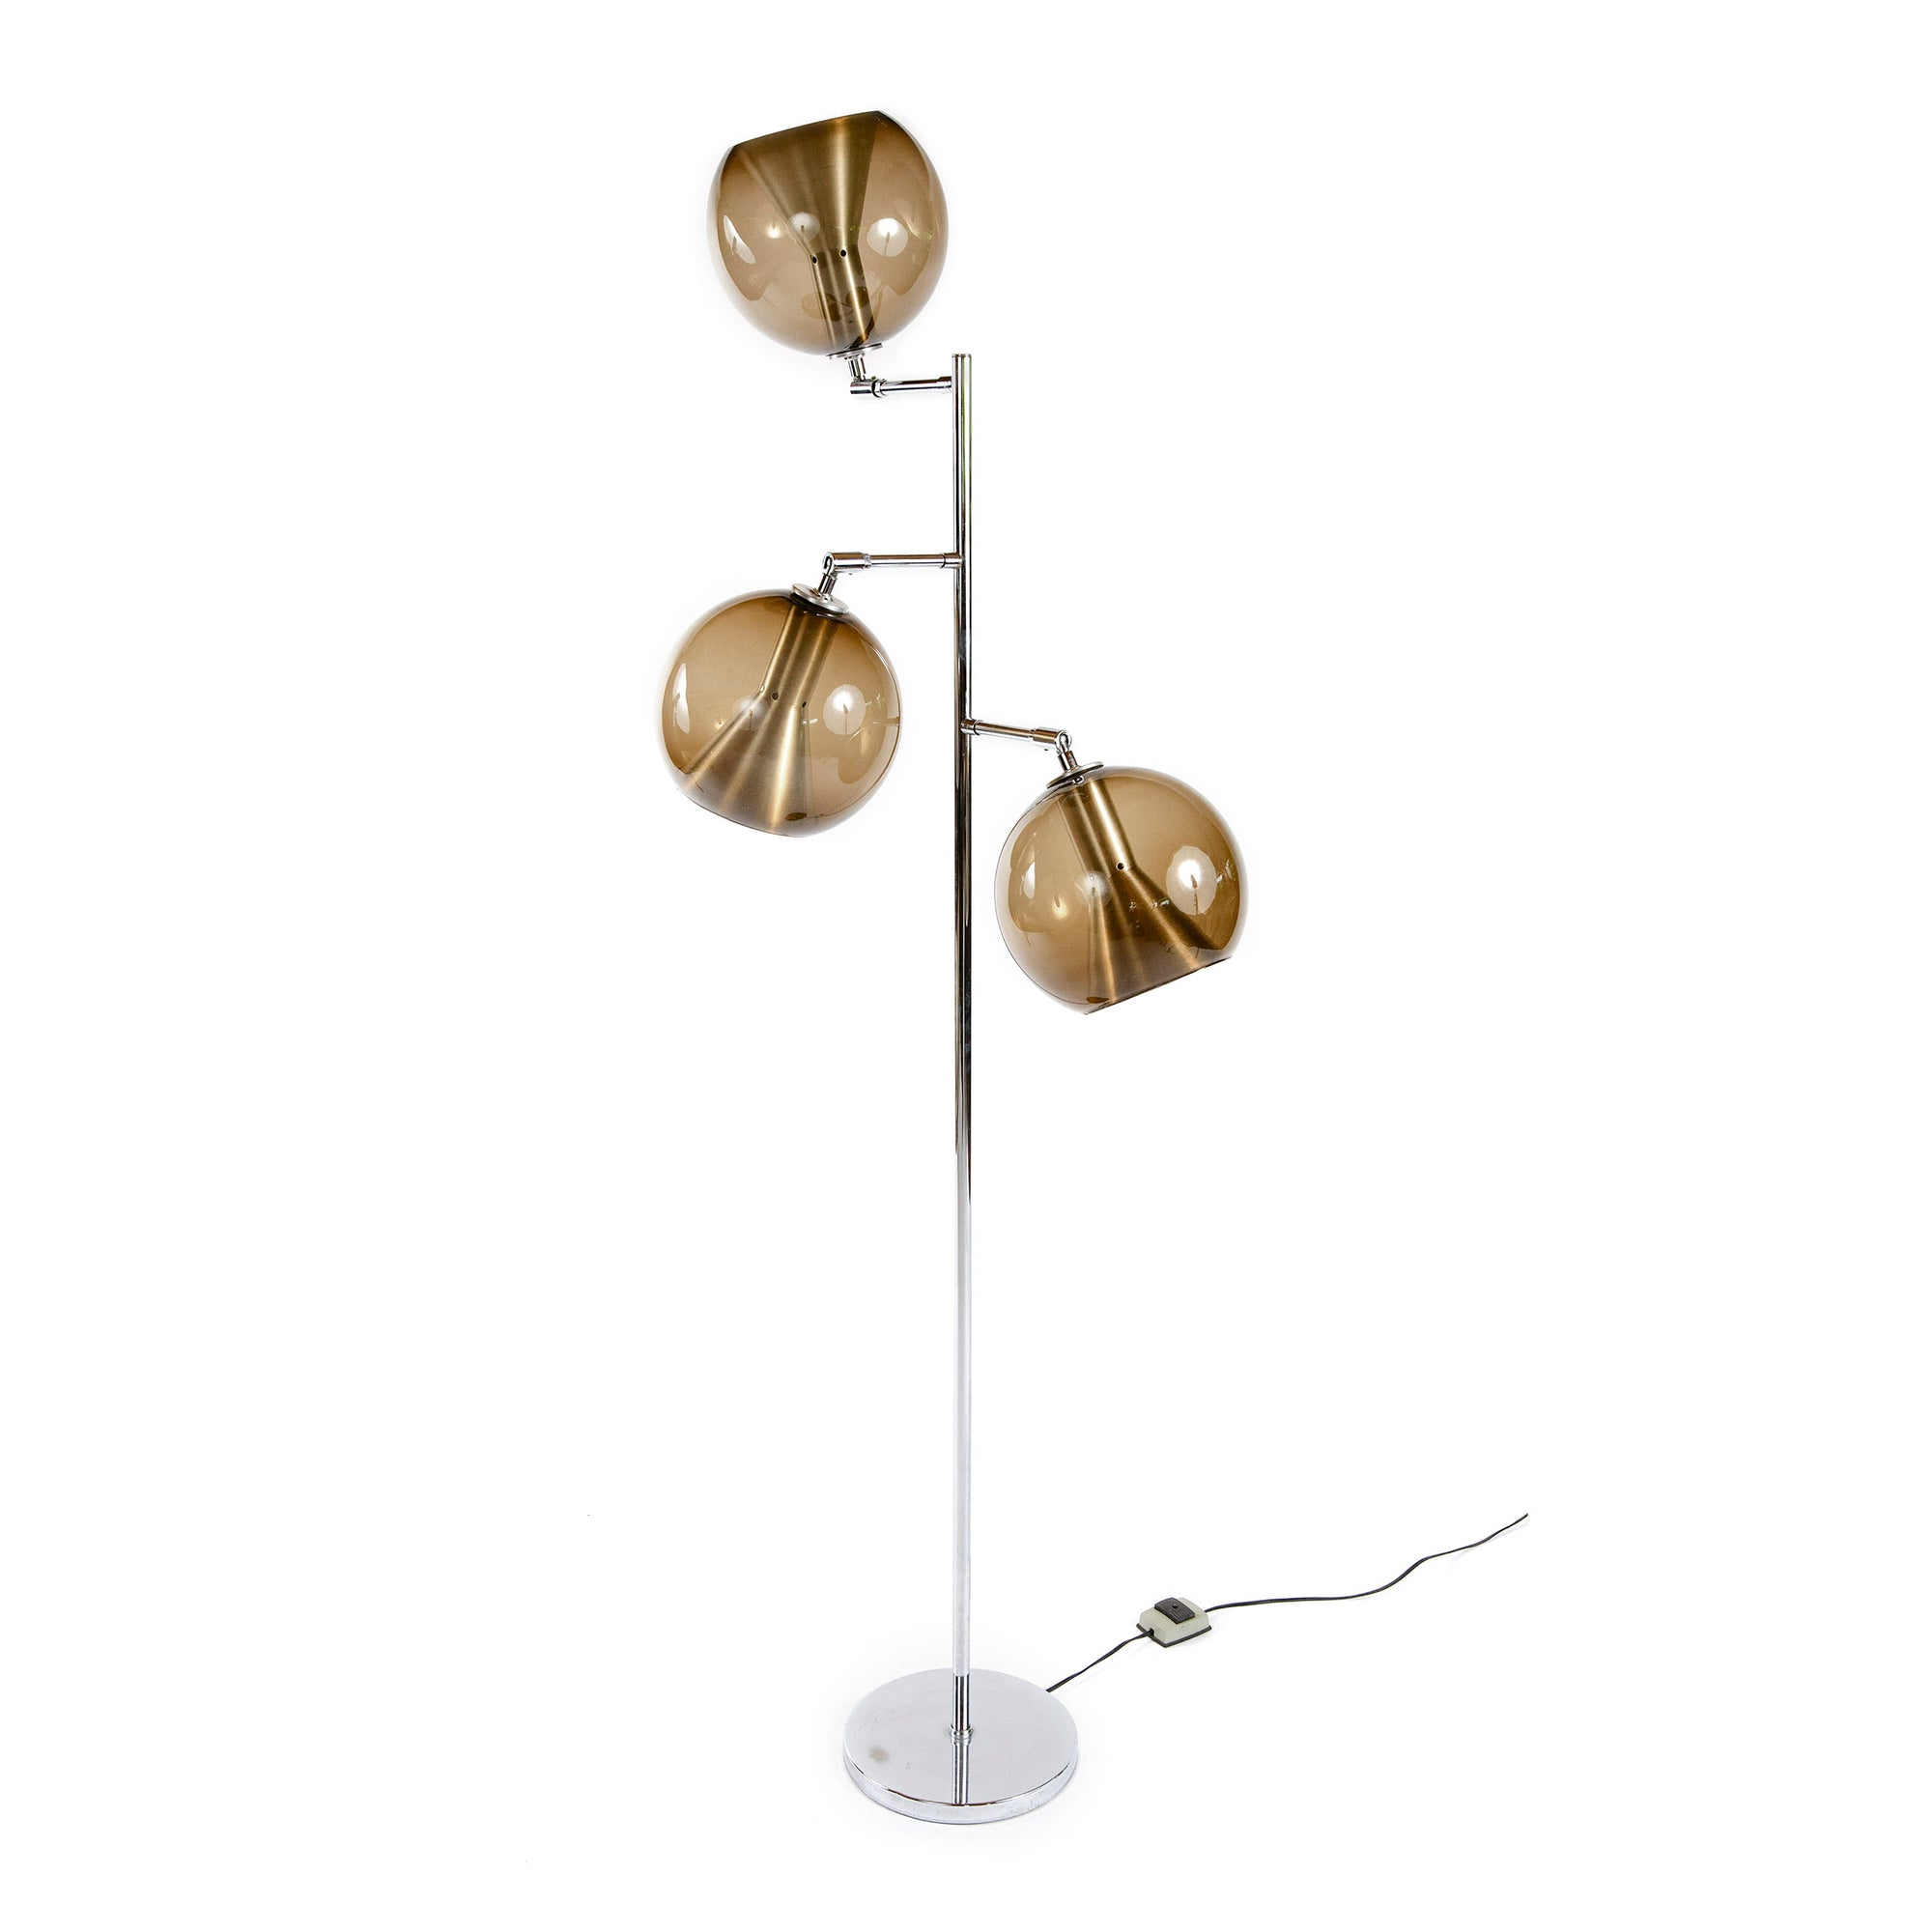 Smoke-Glass Floor Lamp